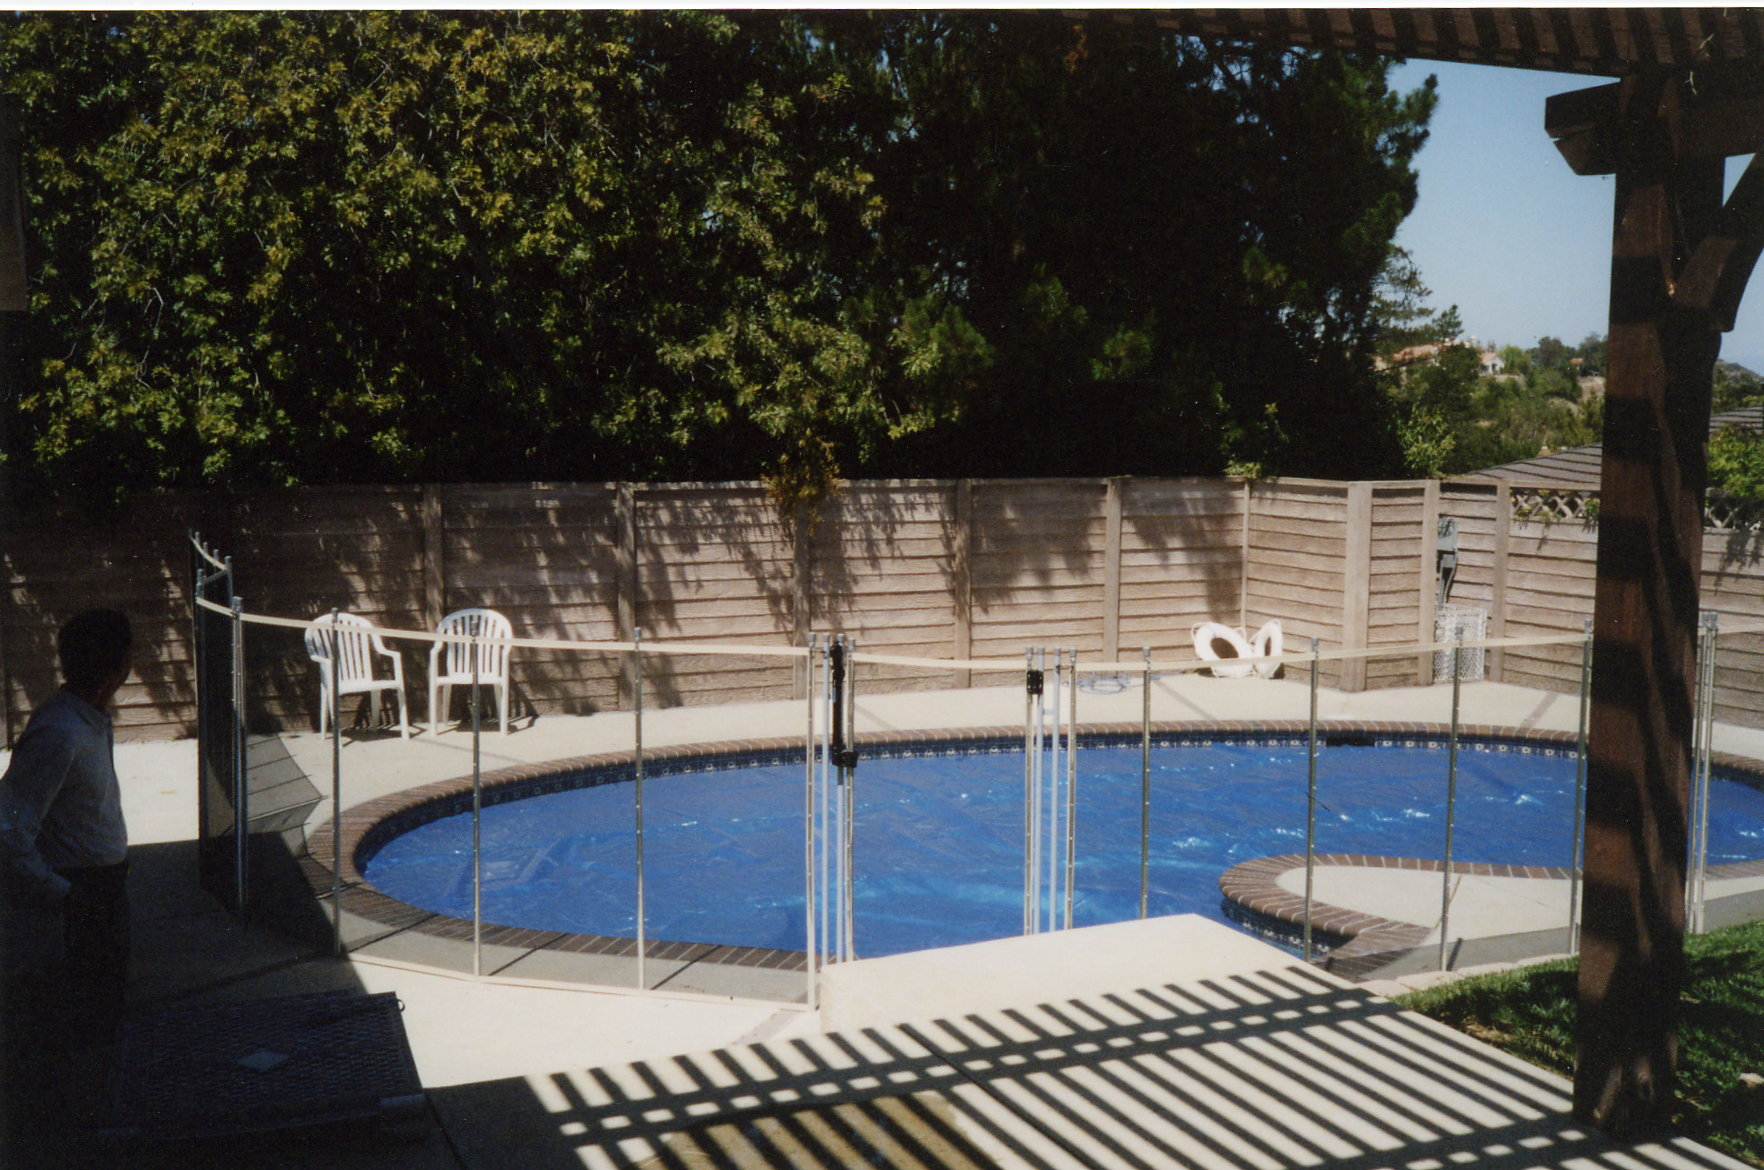 The Best Pool Fence Voted 1 Removable Mesh Pool Fence